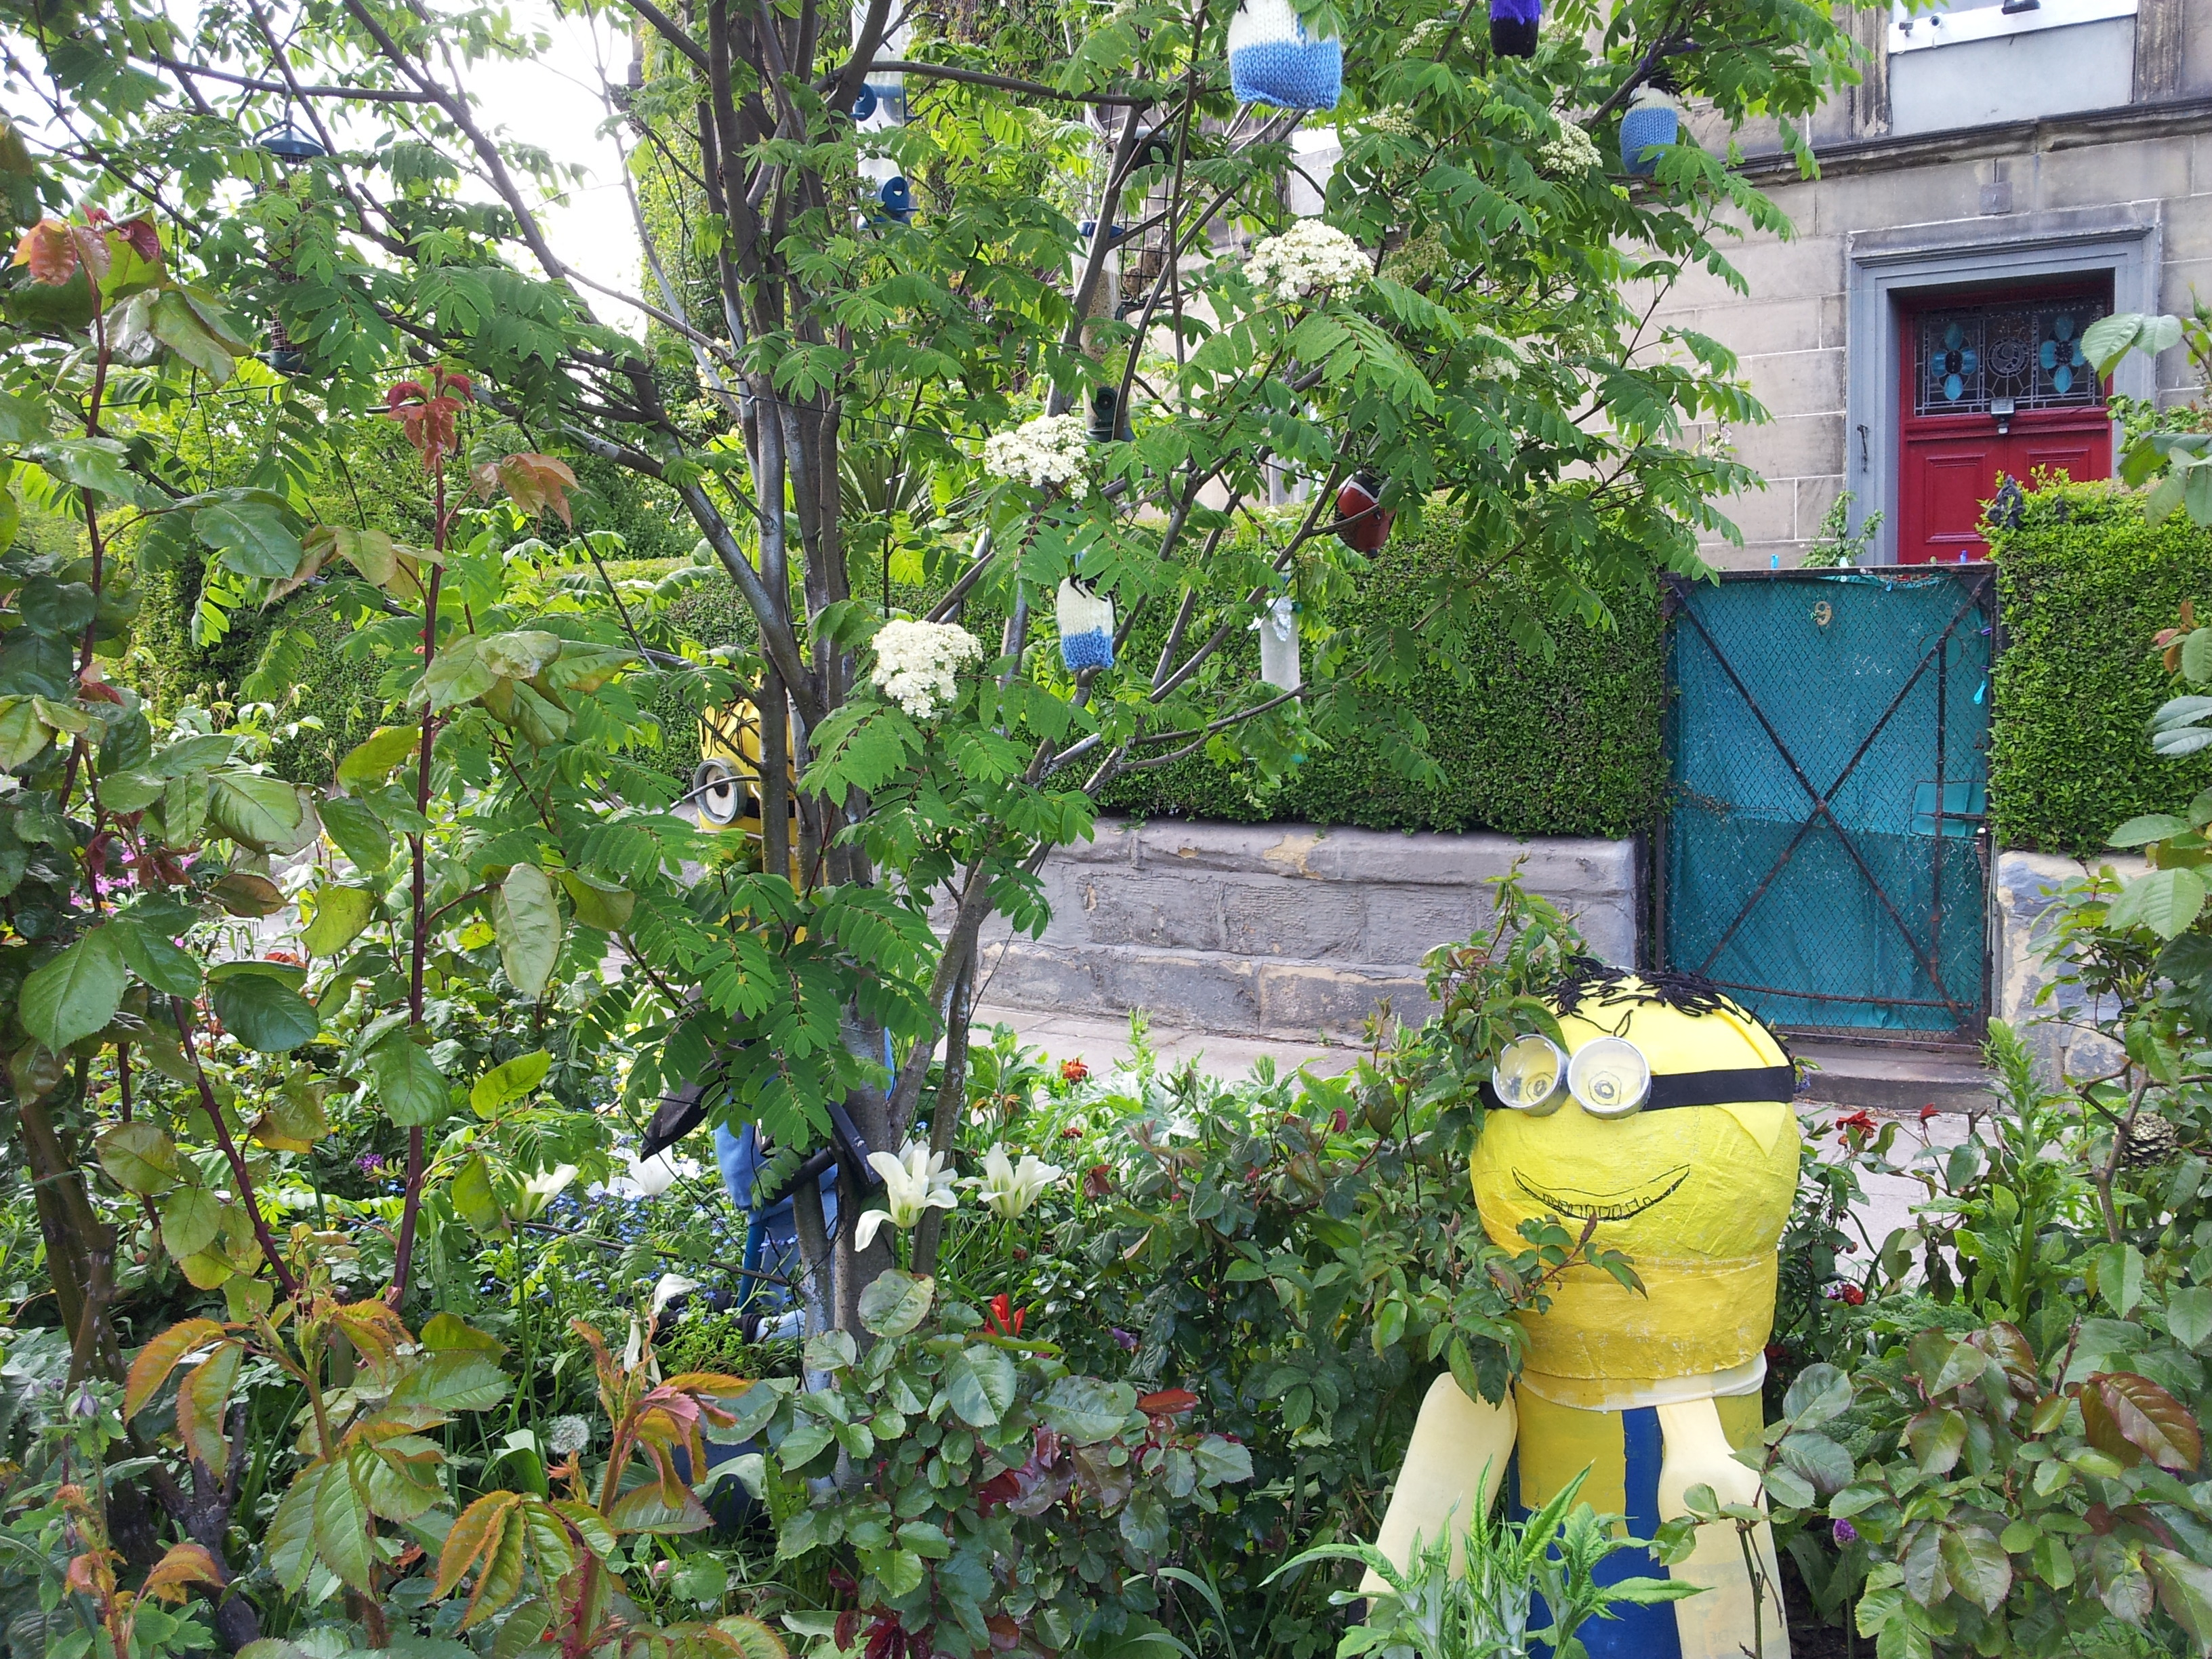 Minions in the garden